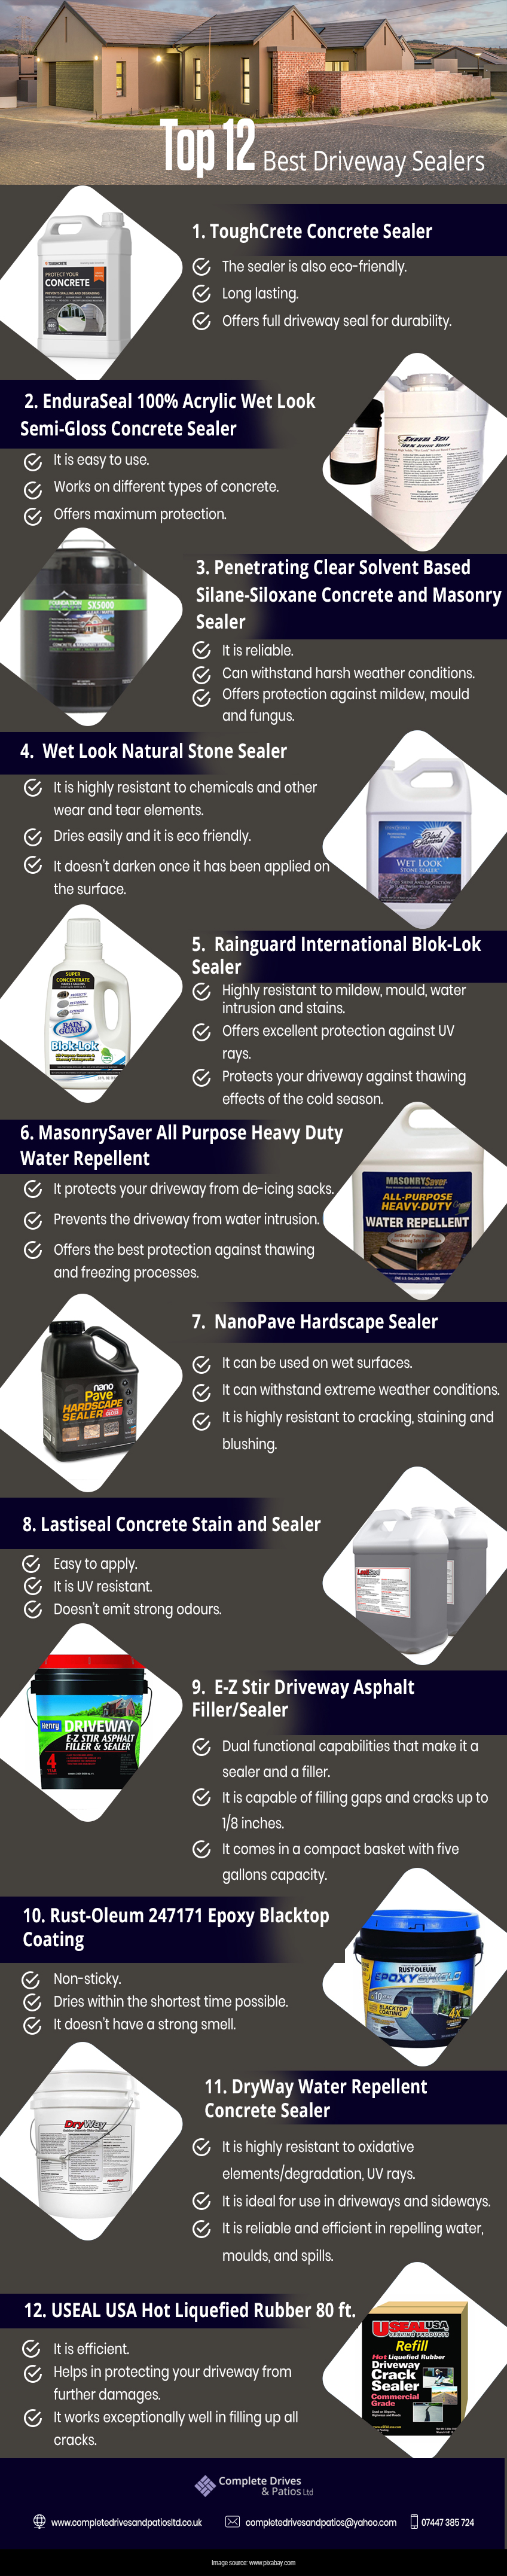 Top 12 Best Driveway Sealers - Reviews of Recommended